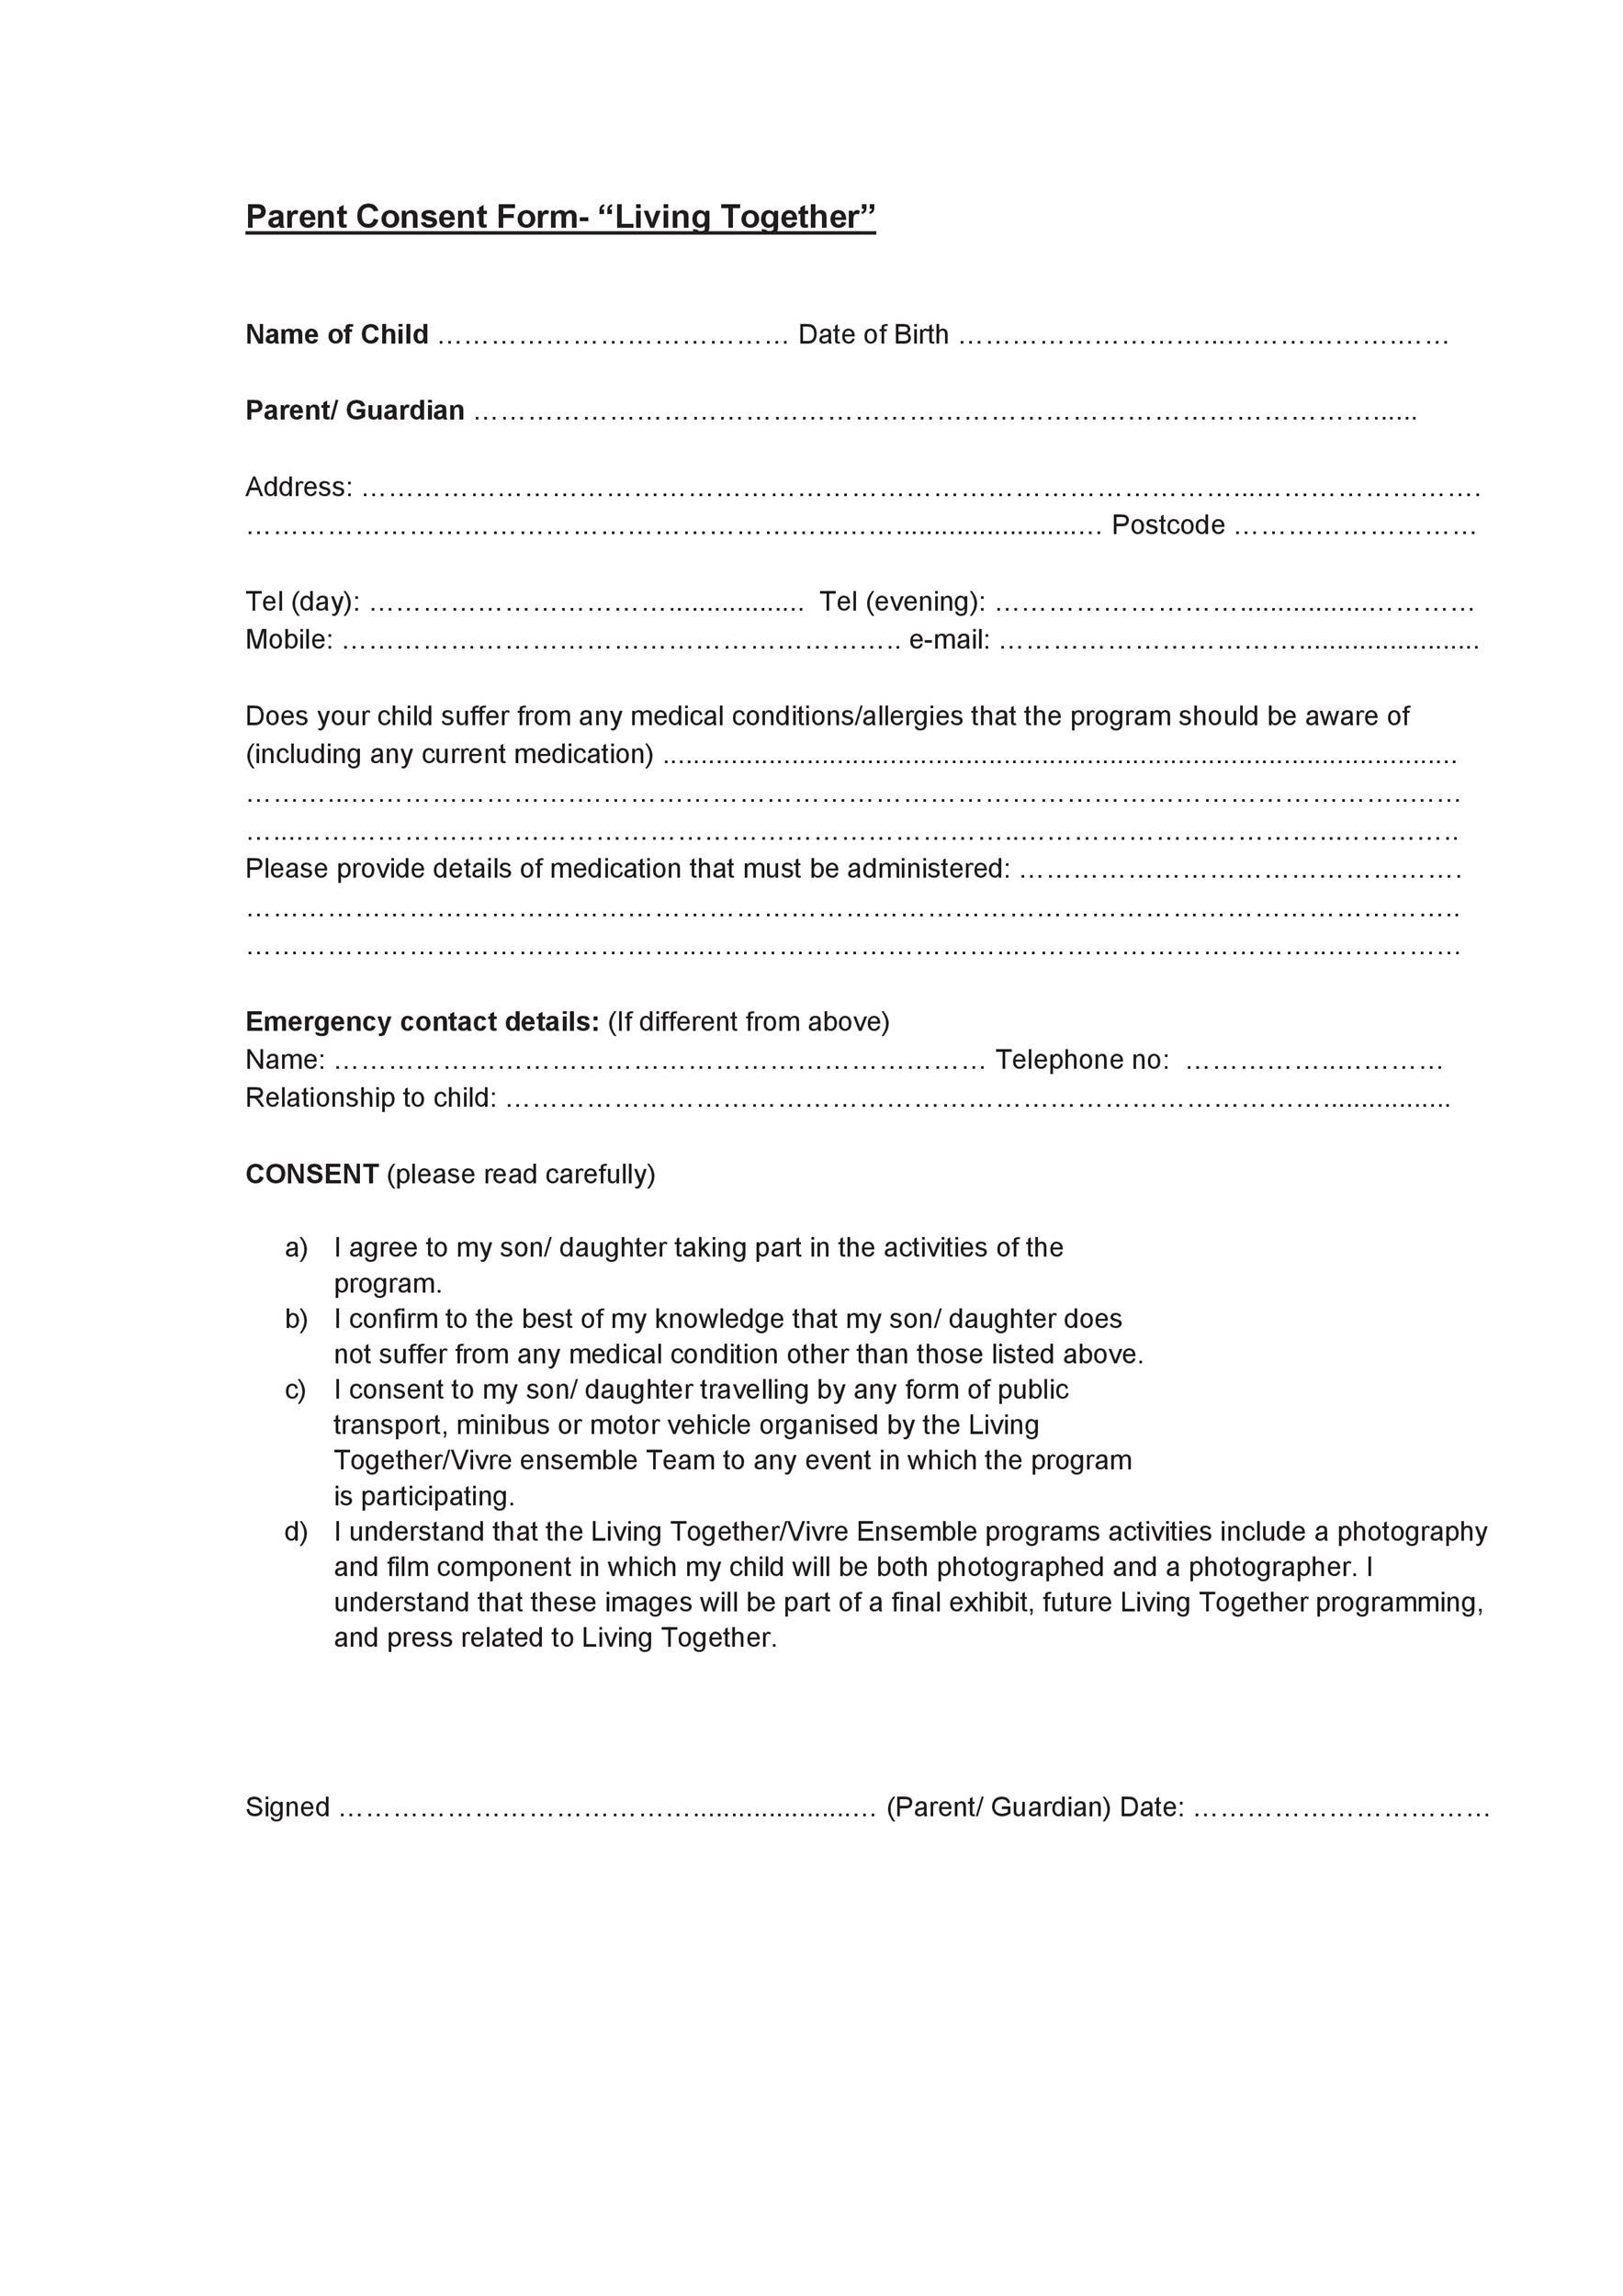 Free parental consent form template 29